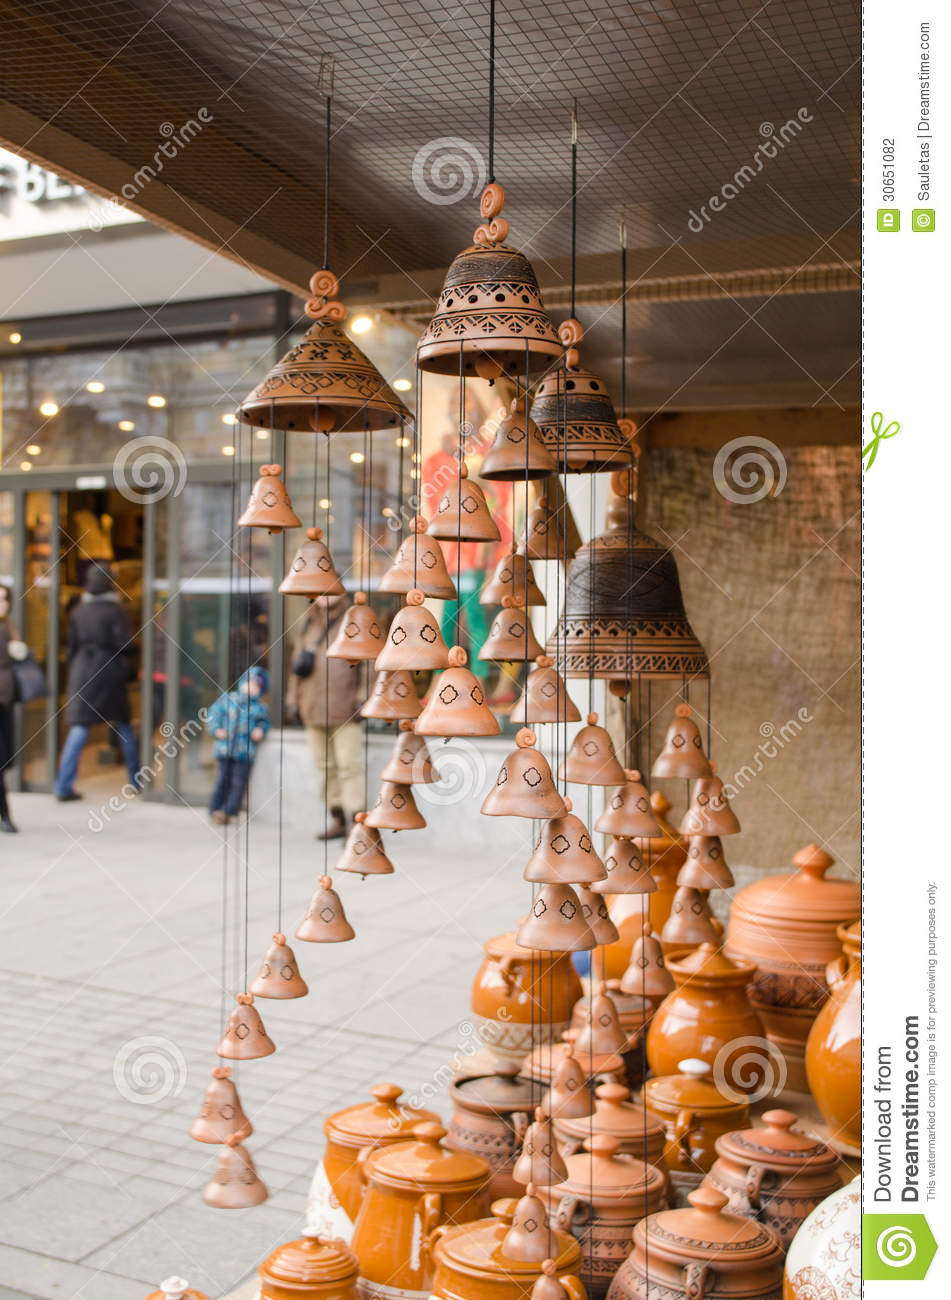 Clay Pots Hang Bells Ware Store Shop Market People Stock